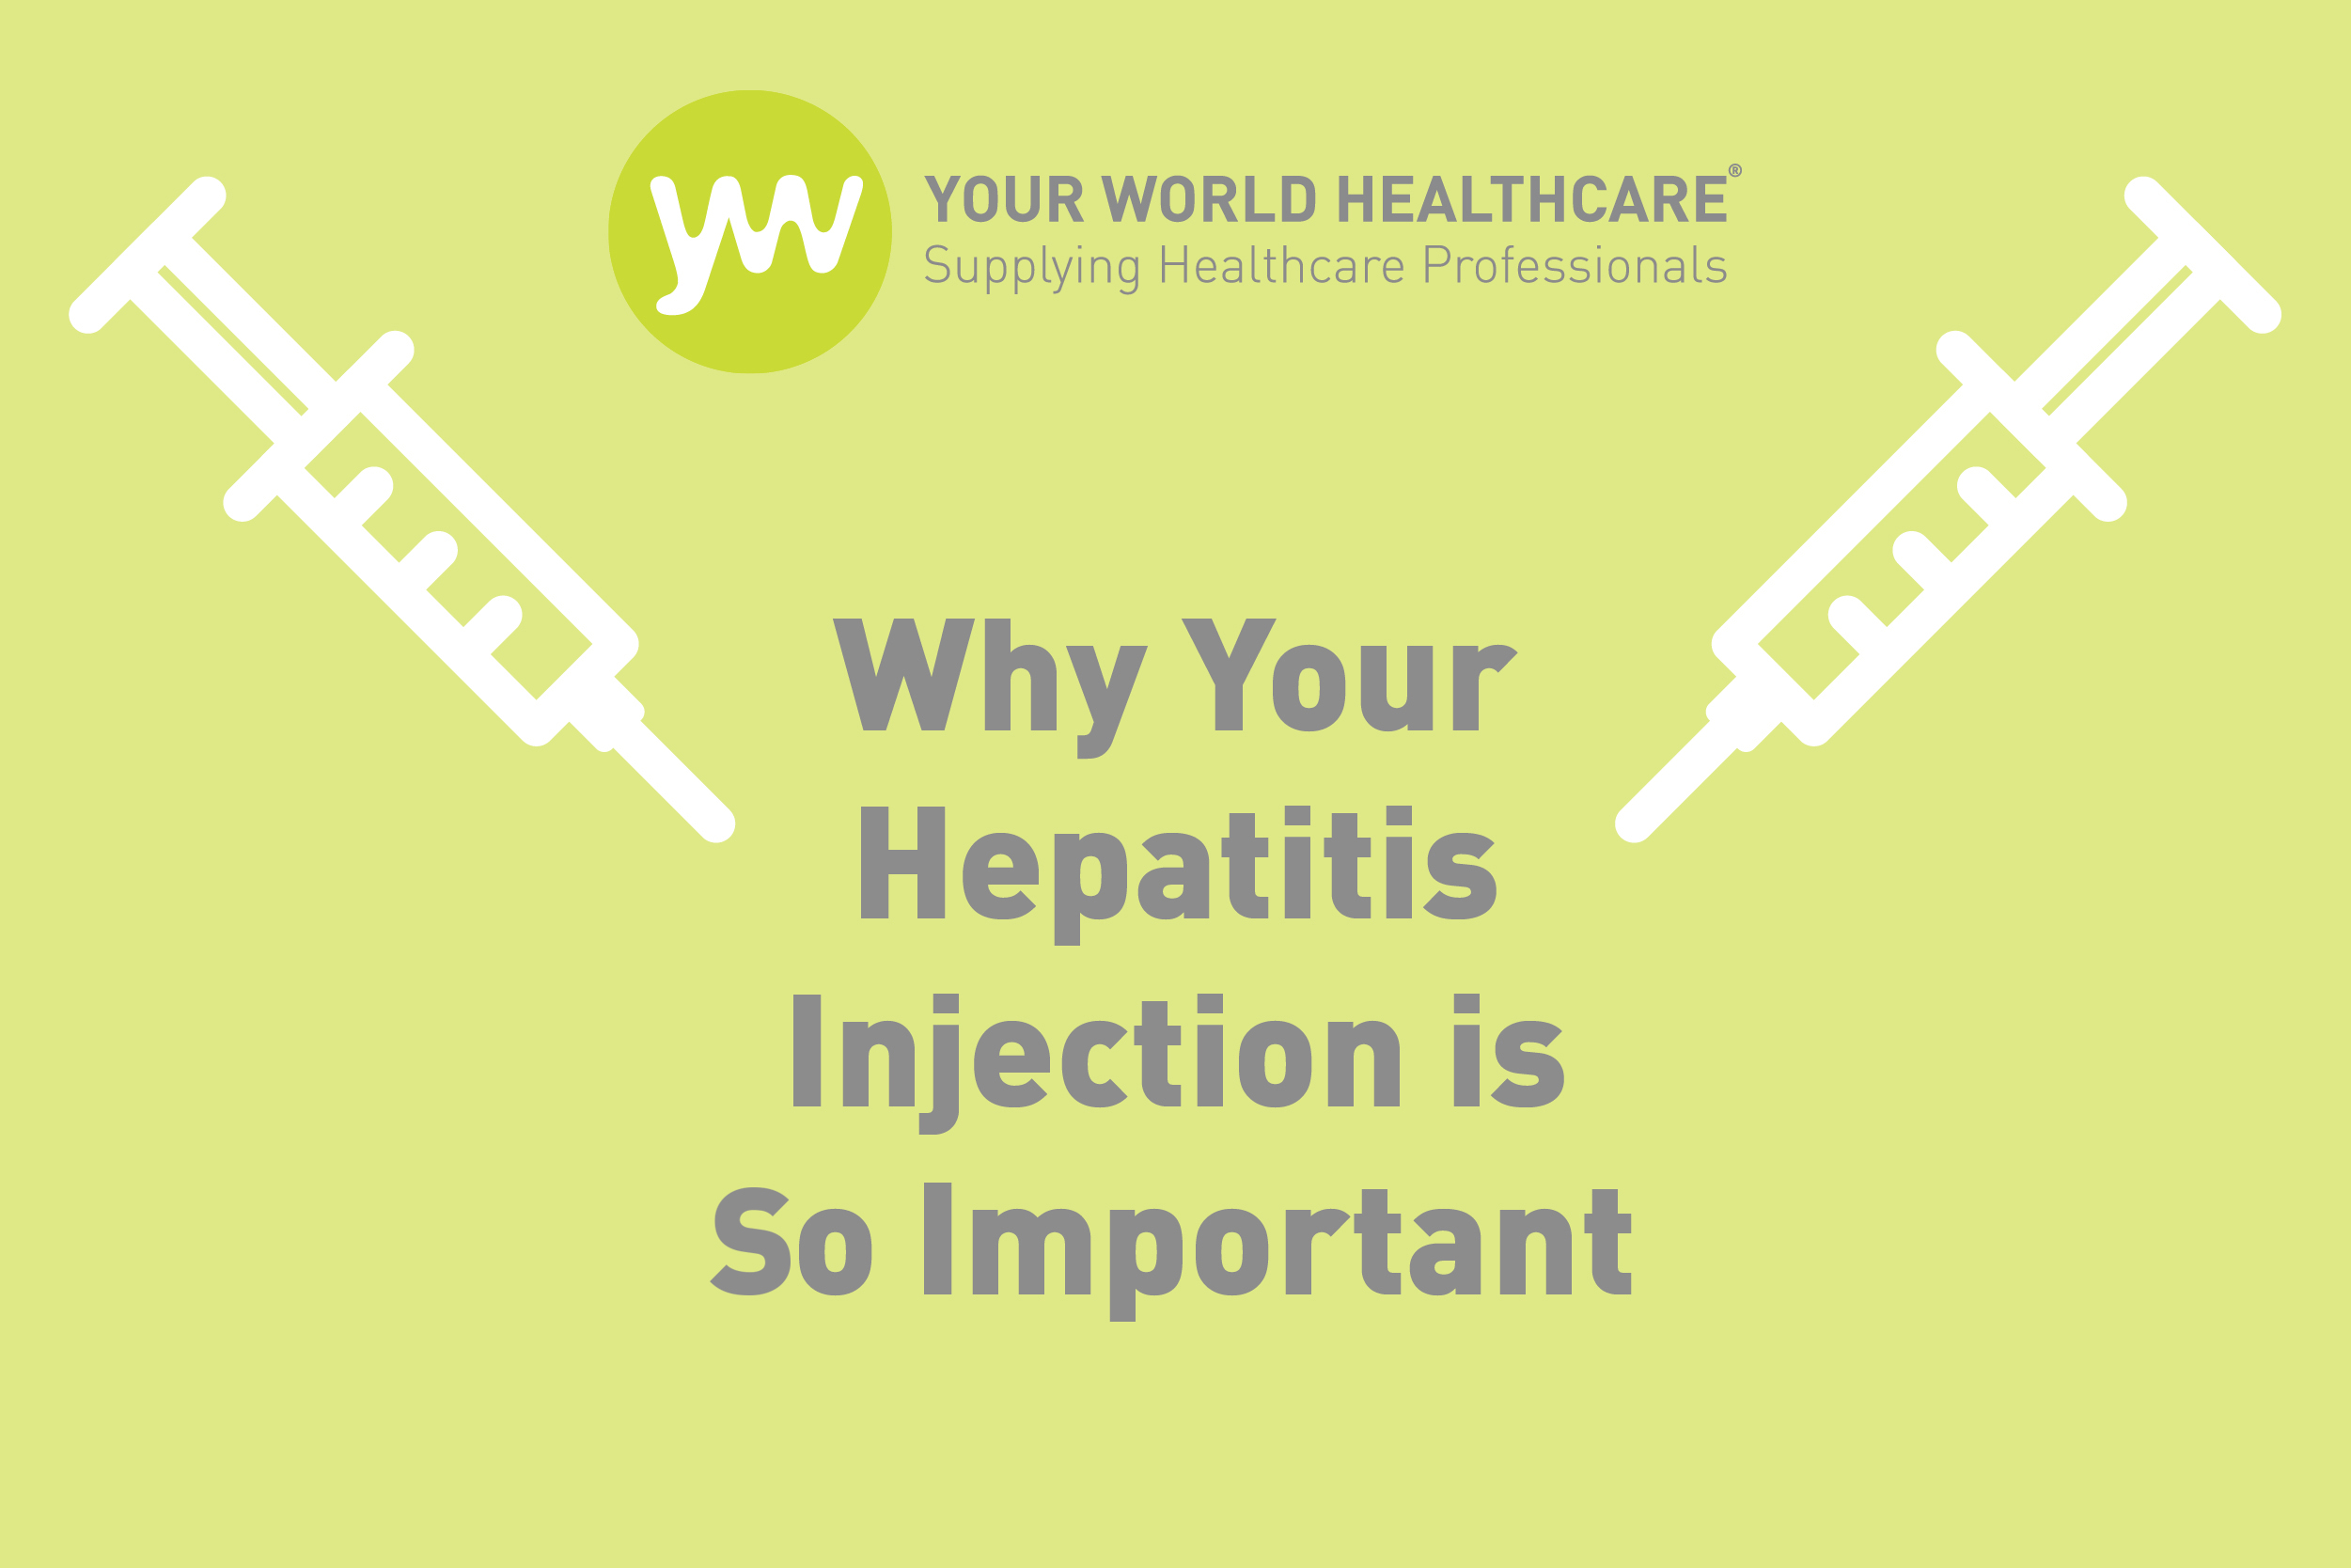 Why Your Hepatitis Injection is So Important